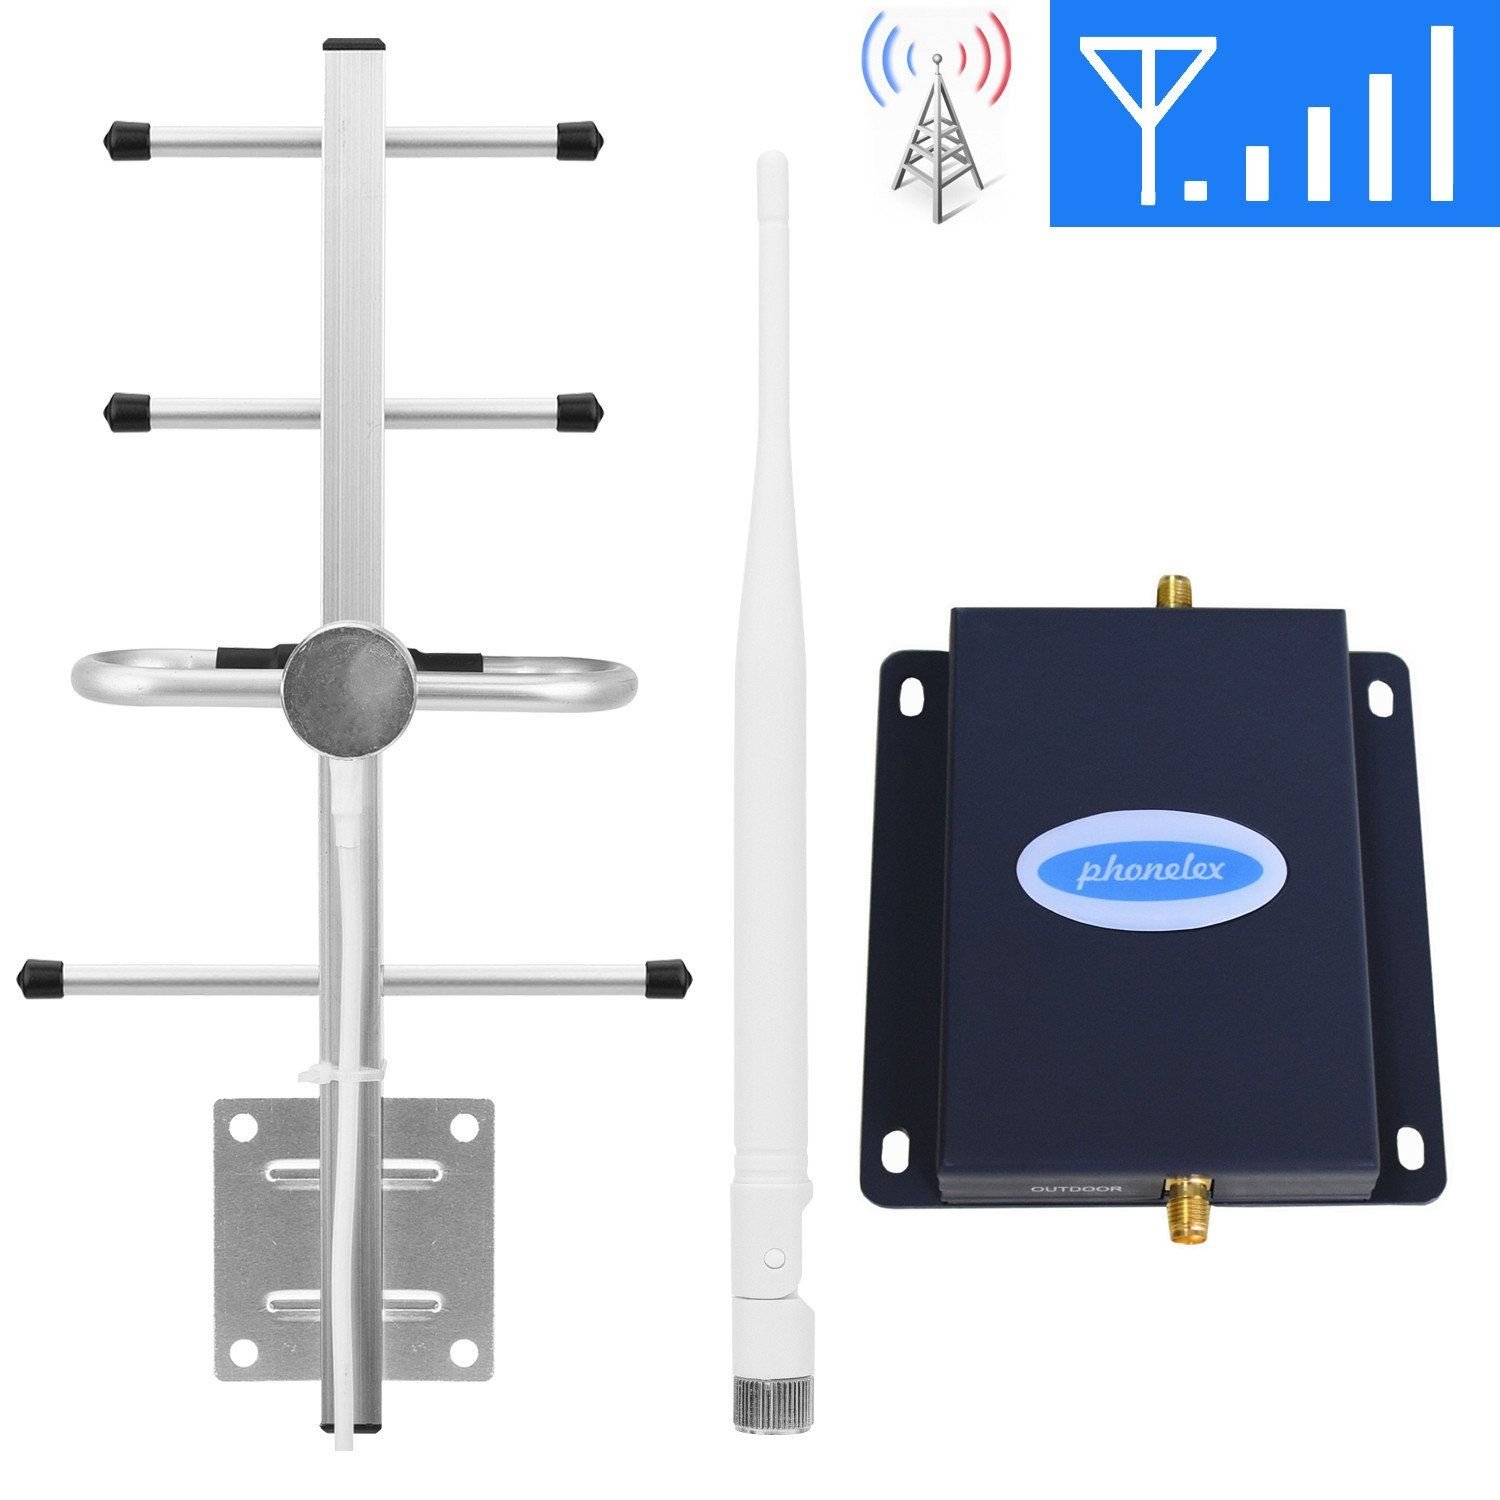 Verizon Cell Phone Signal Booster 4G LTE Band13 700Mhz Cell Signal Booster Verizon Mobile Phone Signal Booster Verizon Cell Phone Signal Amplifier Repeater SHWCELL with Whip+Yagi Antenna Kit for Home